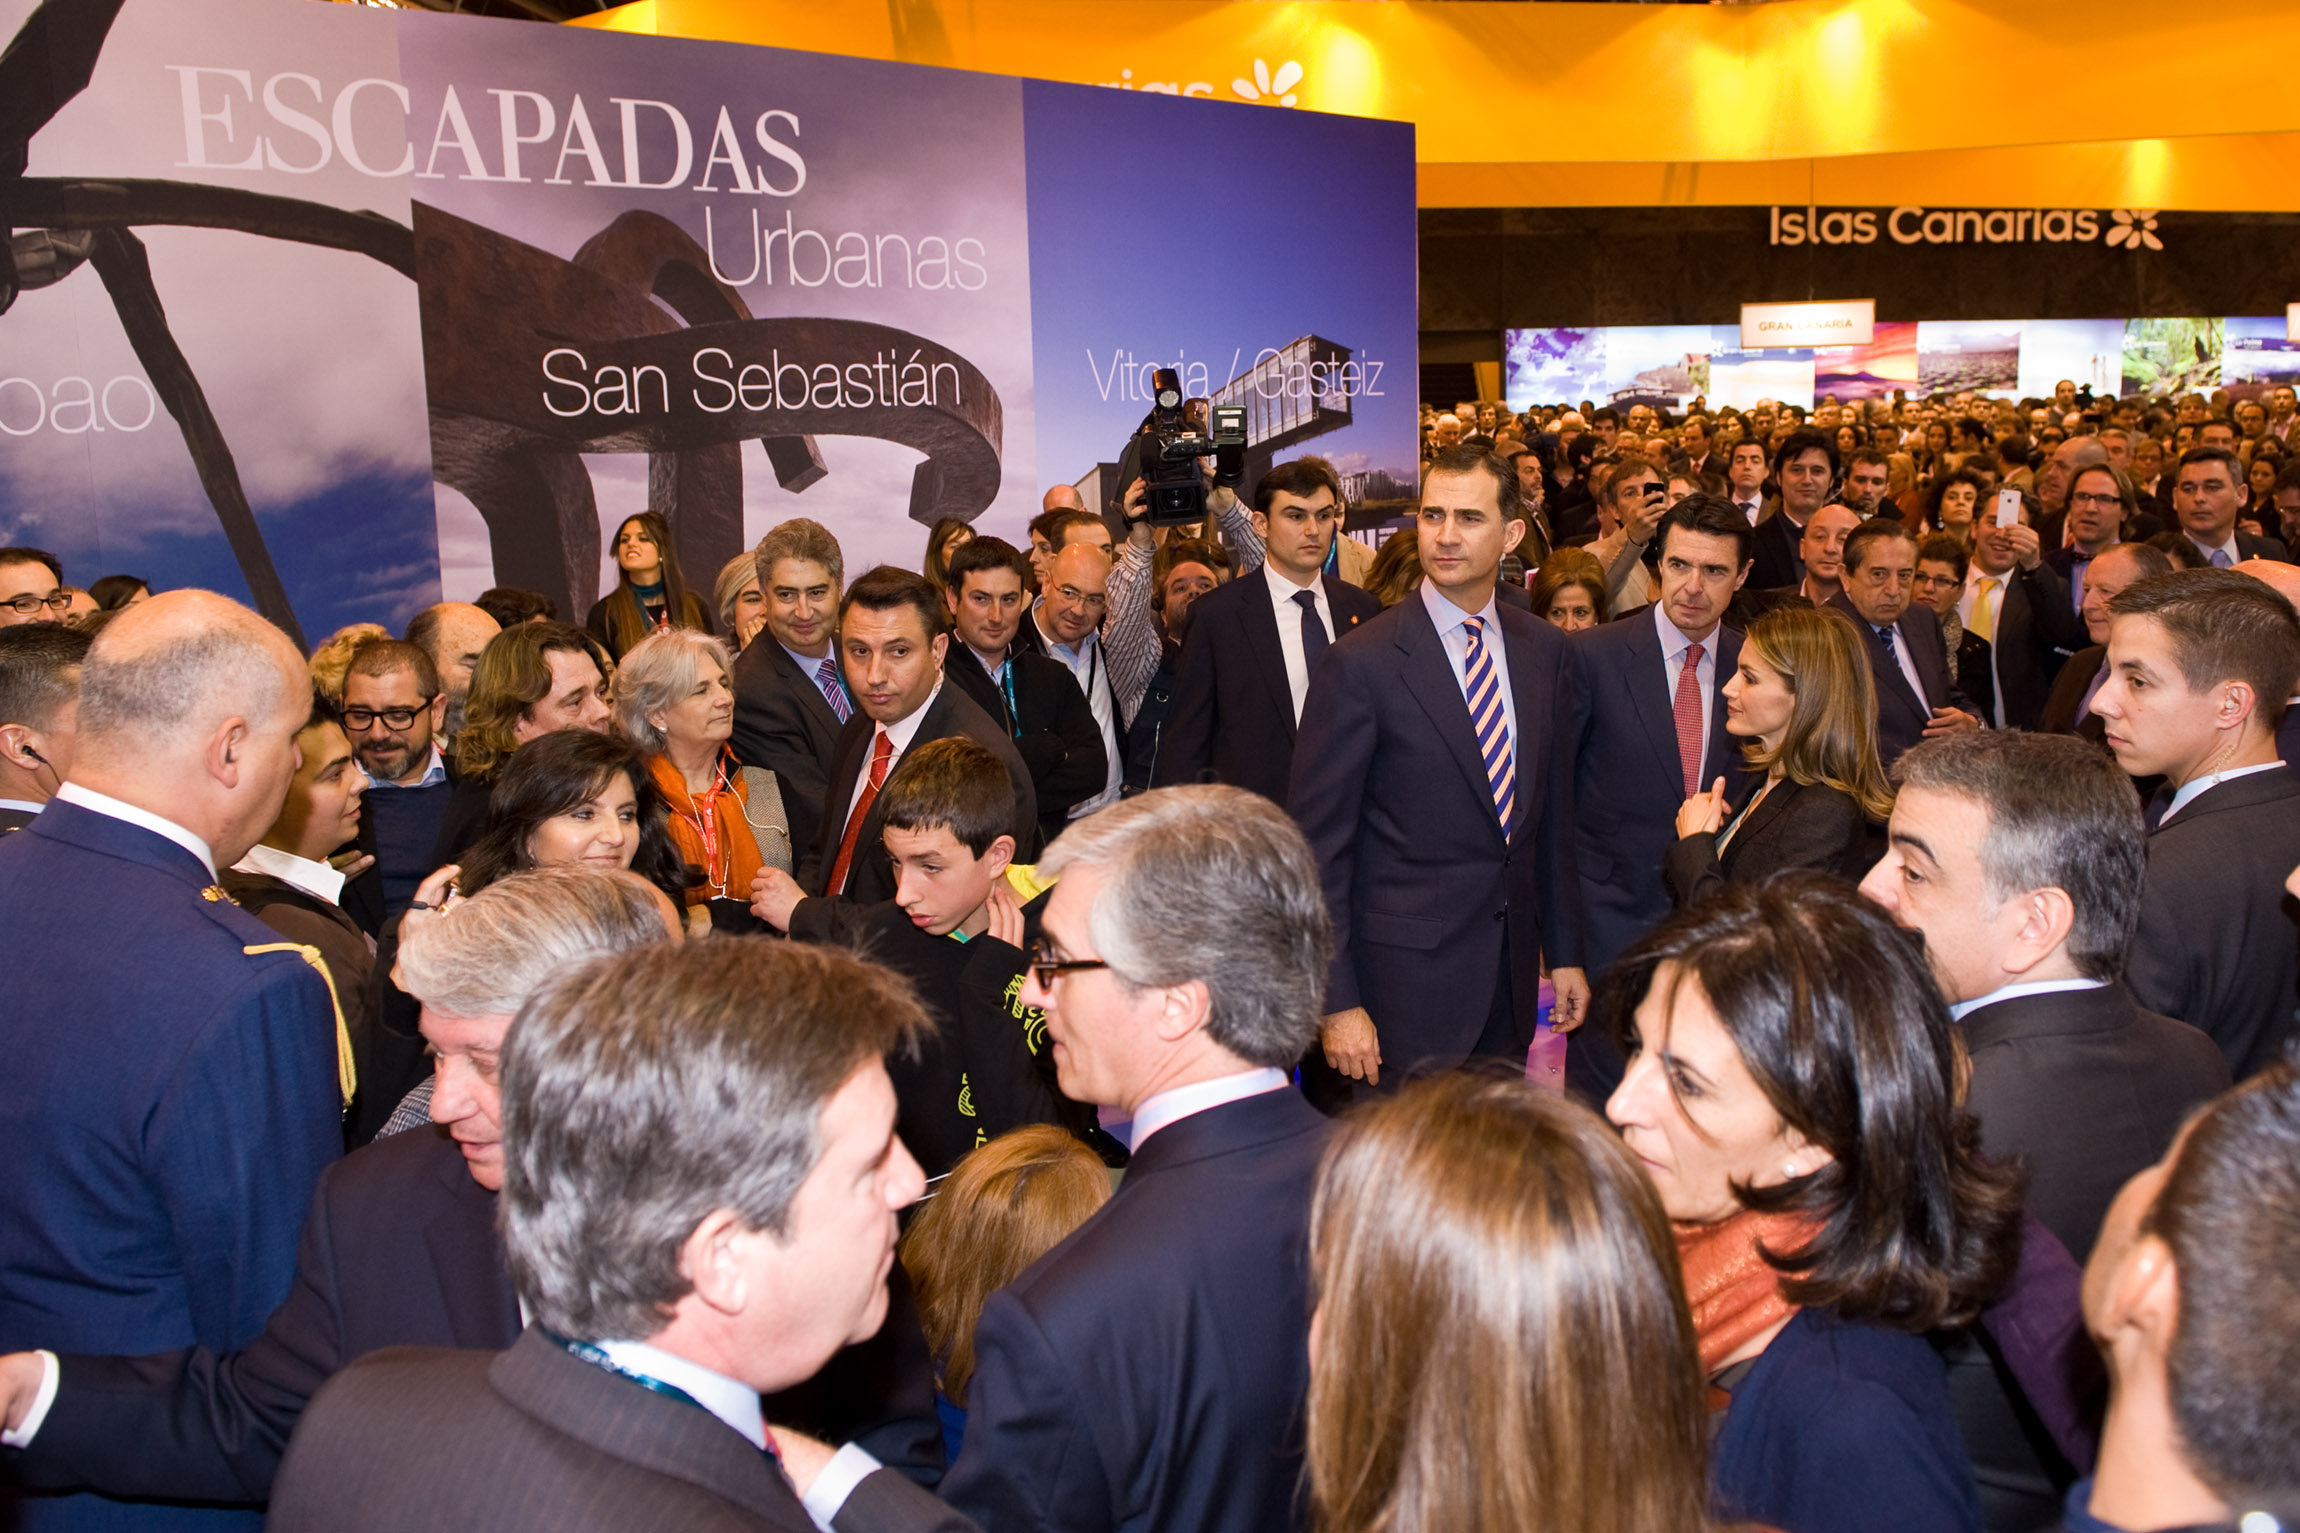 Euskadi se presenta en Fitur con la gastronoma como eje central